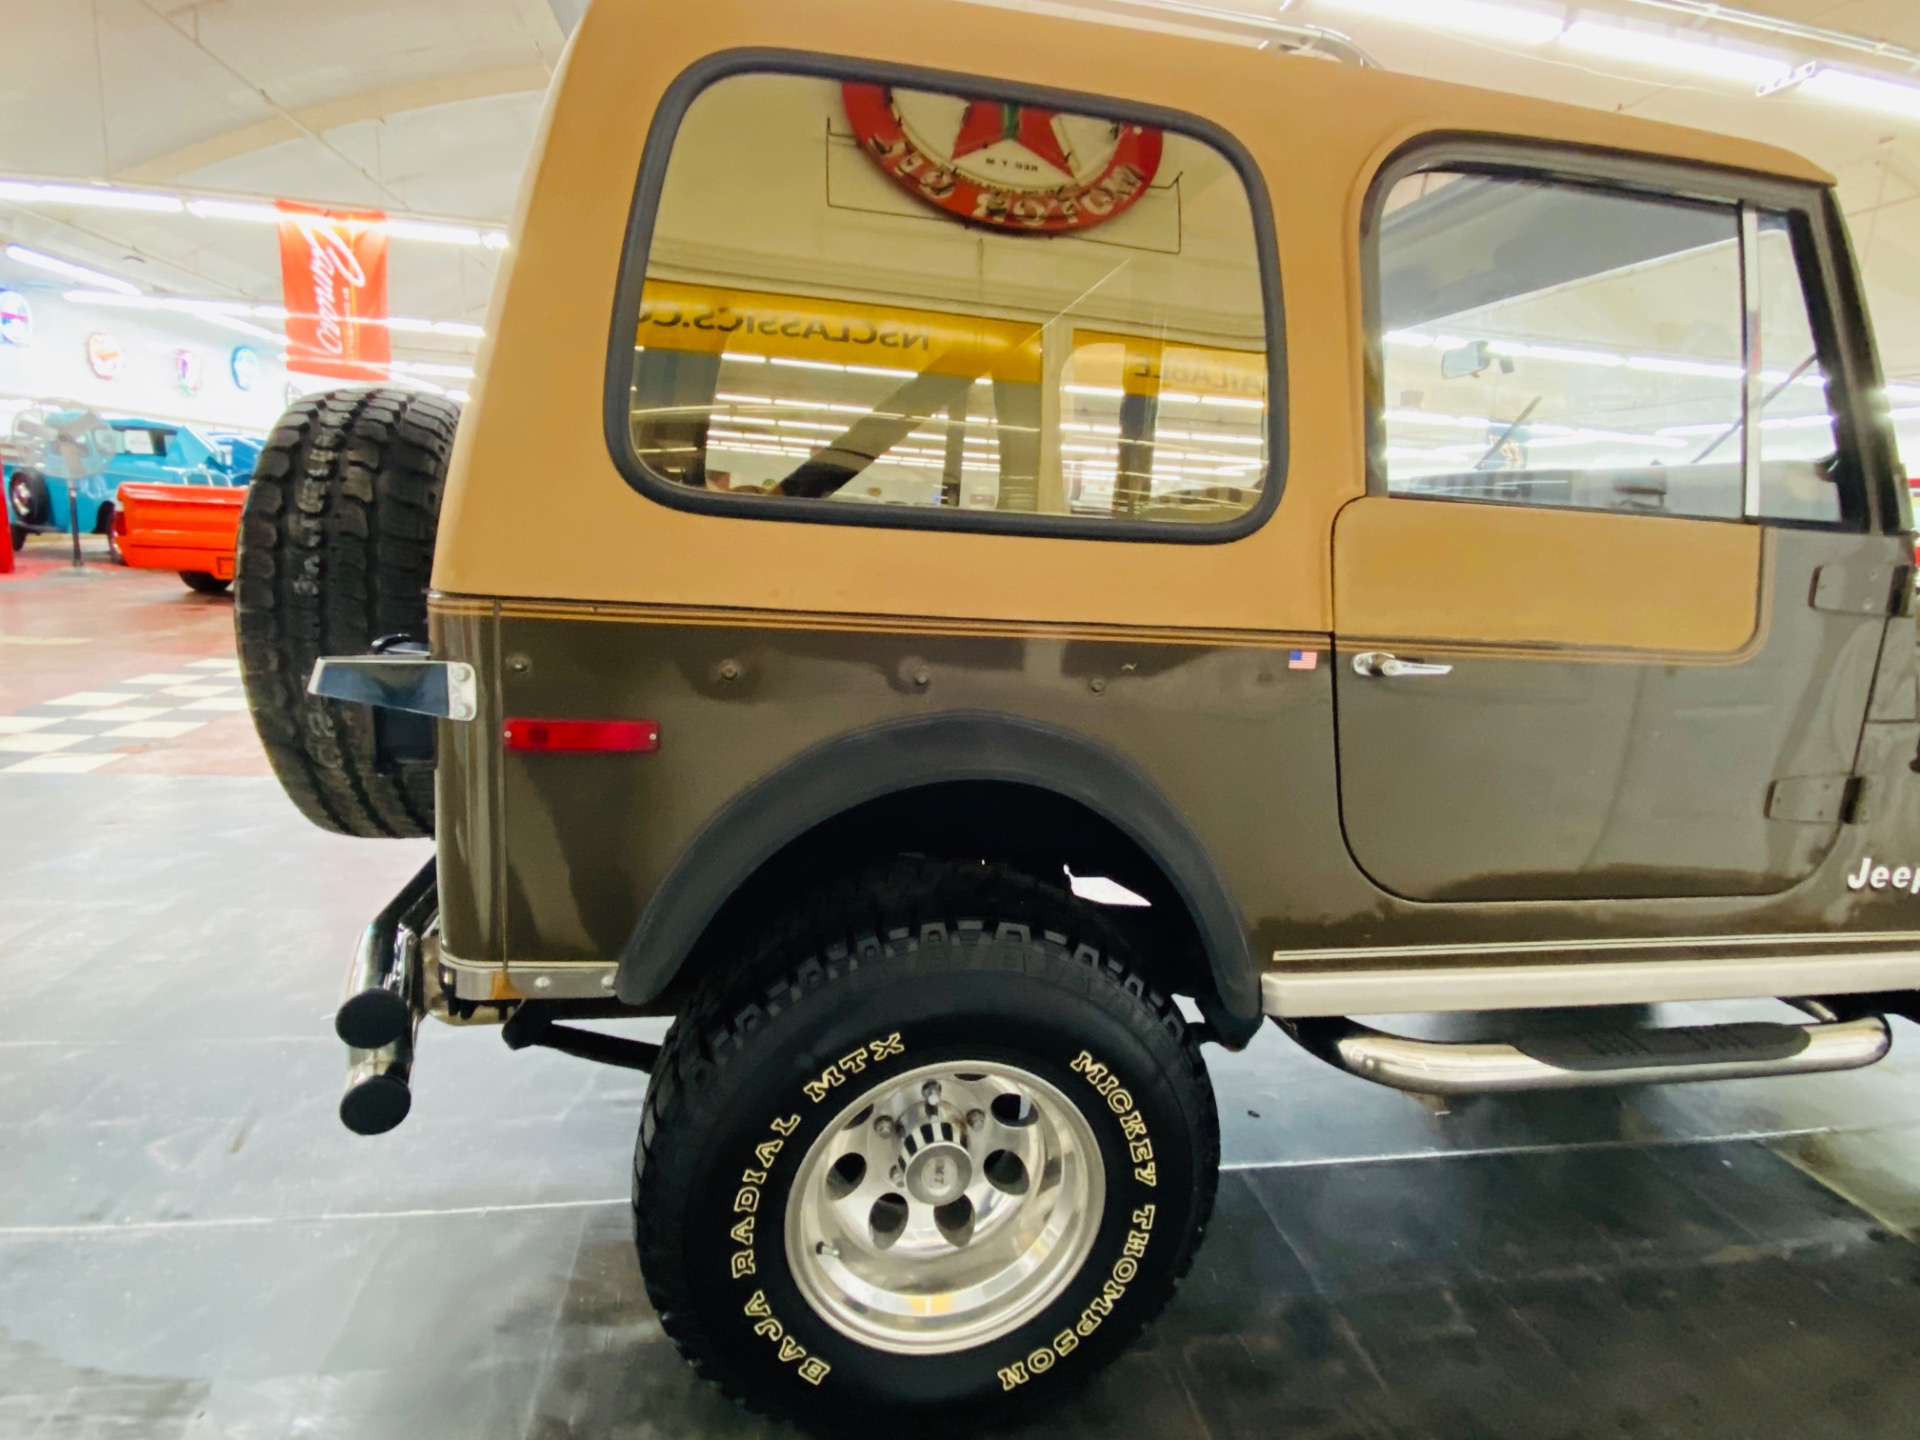 Used 1978 Jeep CJ-7 - GOLDEN EAGLE - LEVIS EDITION - FACTORY V8 ENGINE - SEE VIDEO | Mundelein, IL